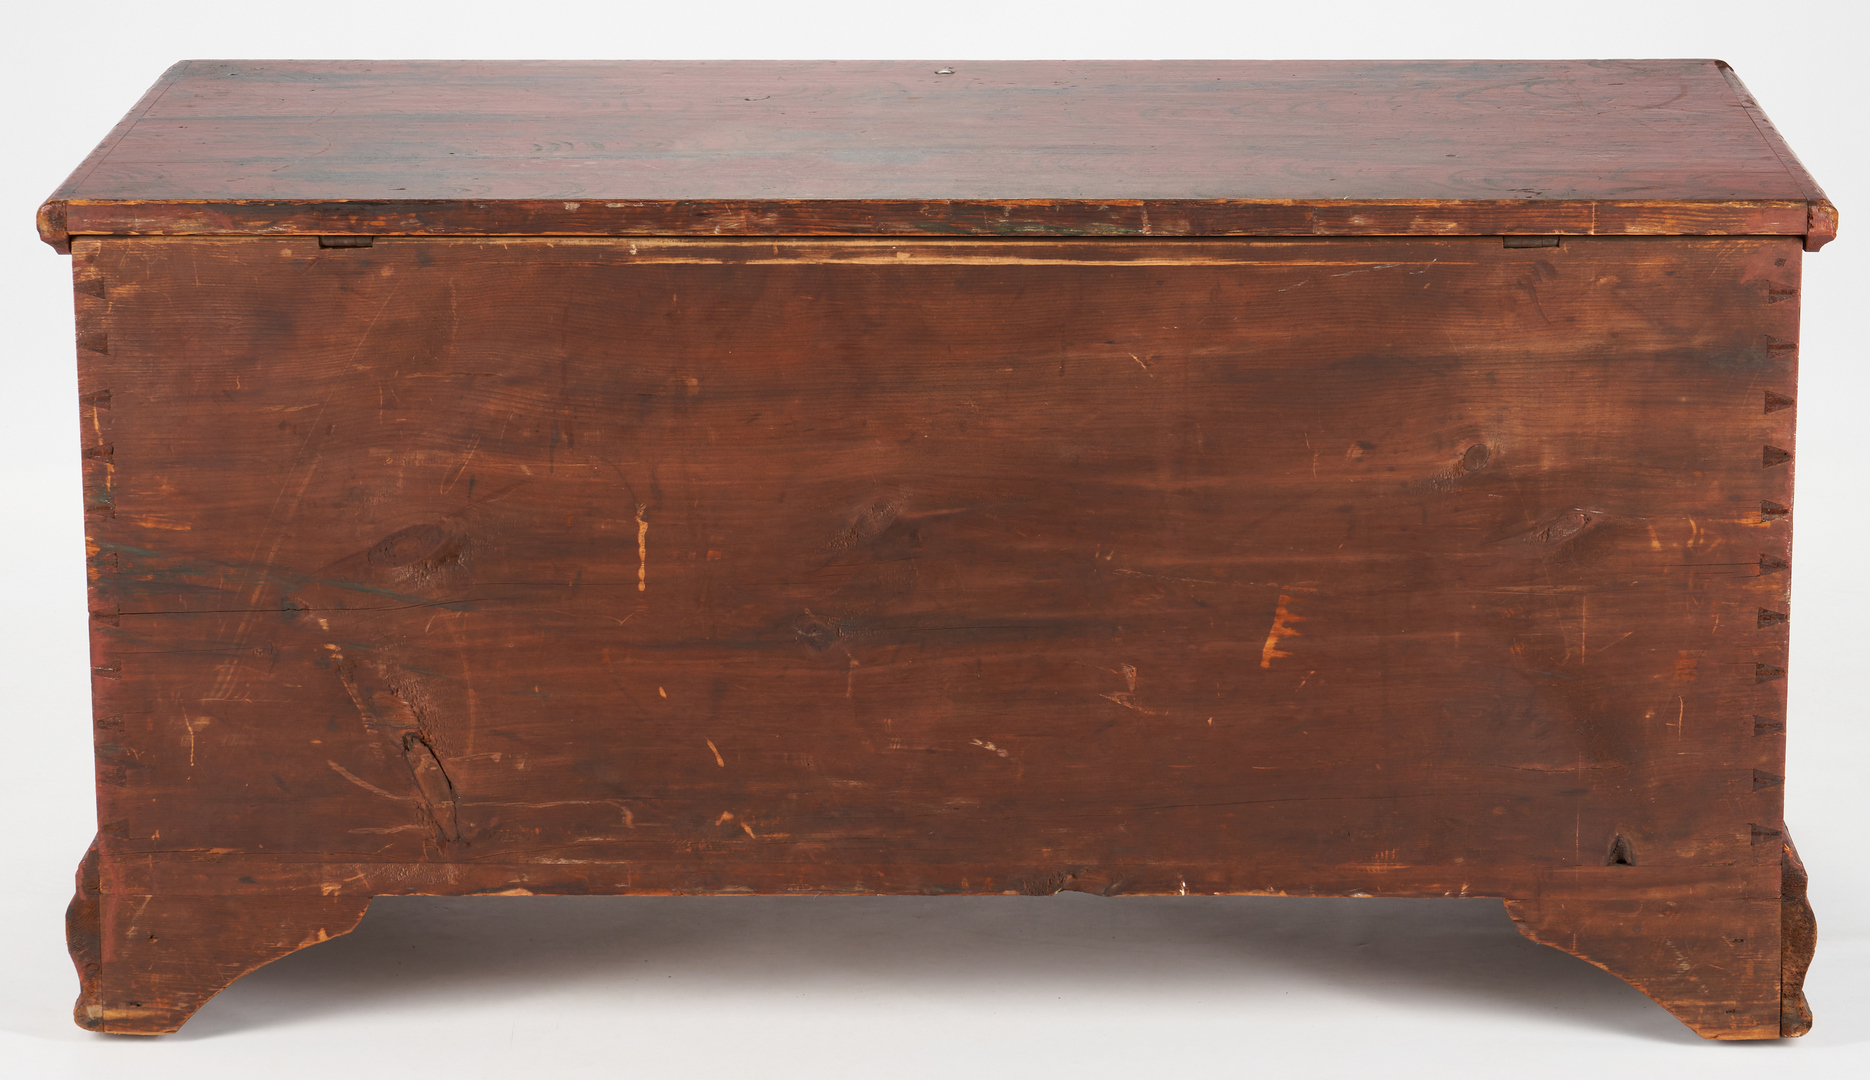 Lot 231: American Painted Blanket Chest with Fraktur